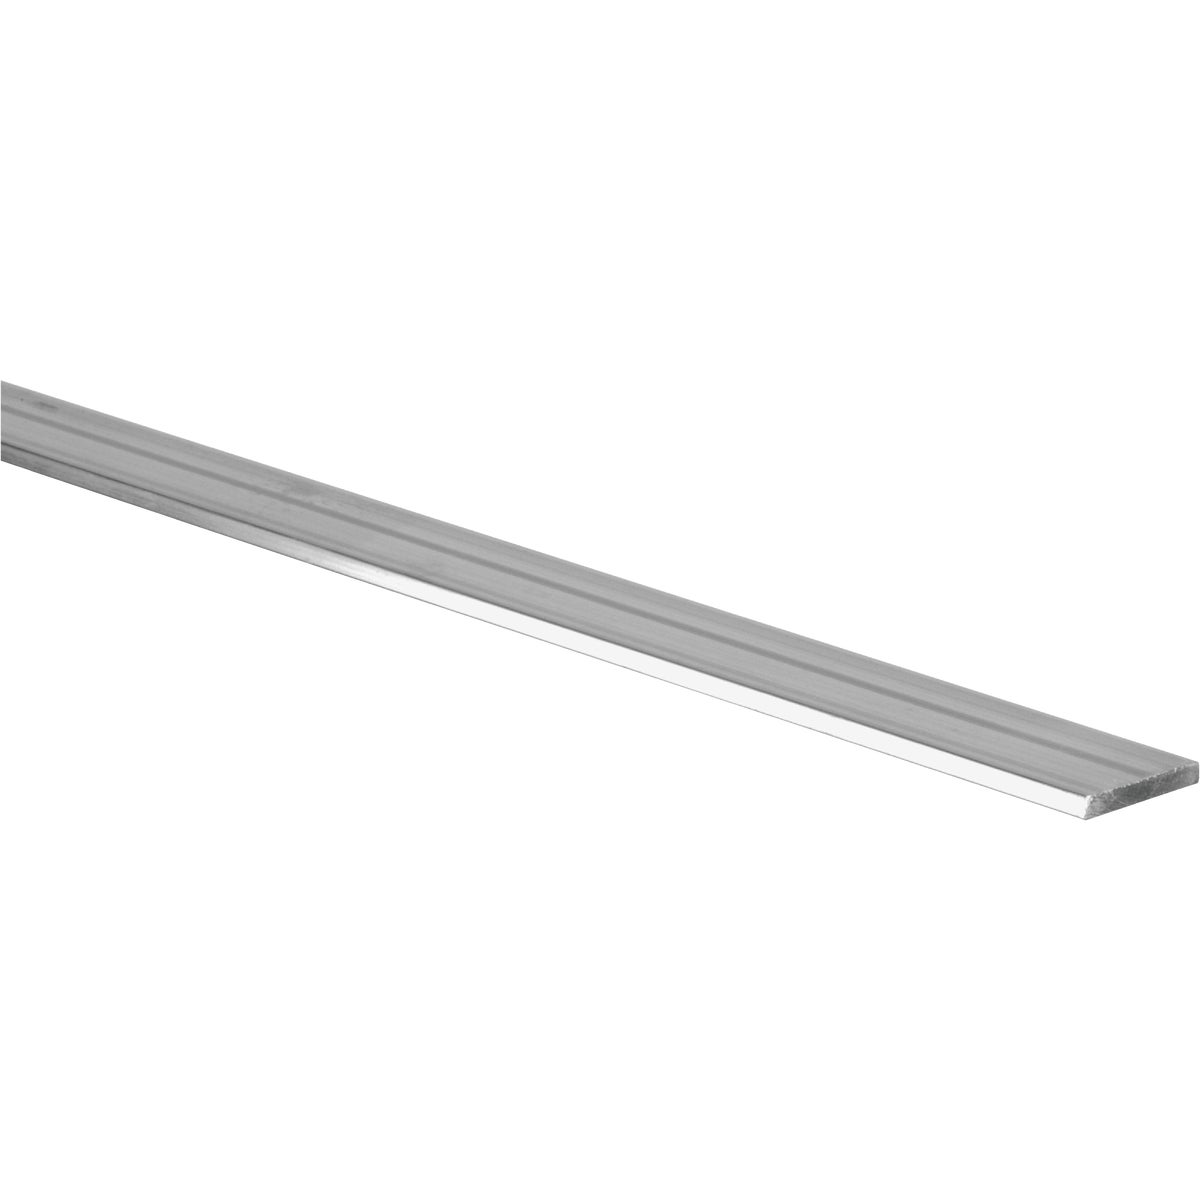 1X1/8X6' ALUMINUM BAR - N247072 by National Mfg Co